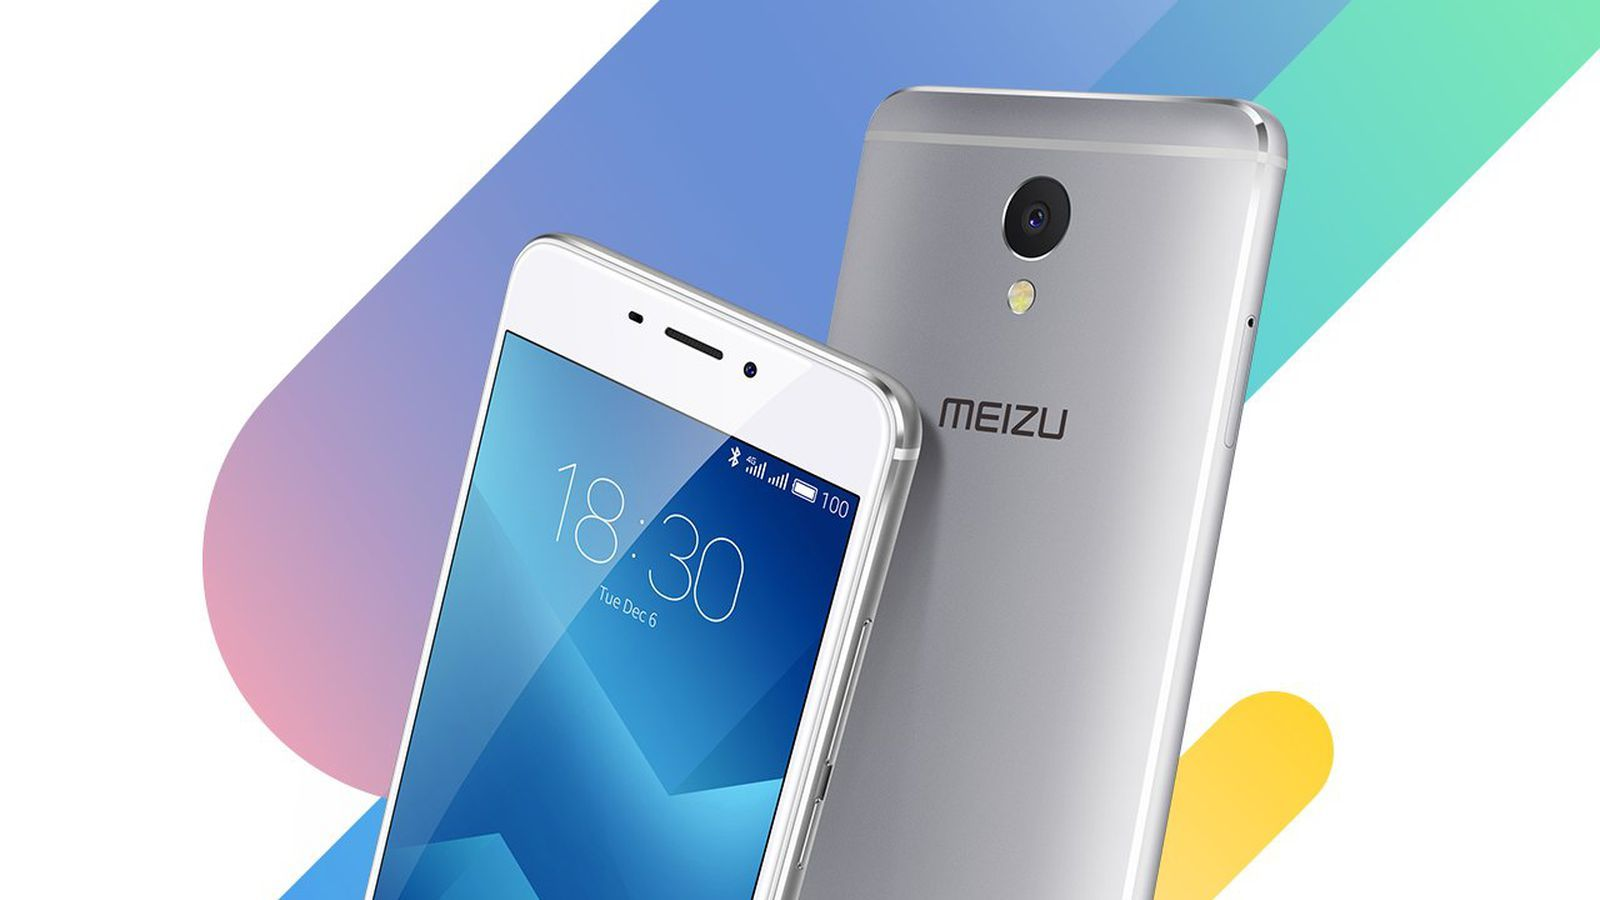 Meizu's M5 Note redefines incremental improvement with 0.1mm thinner body